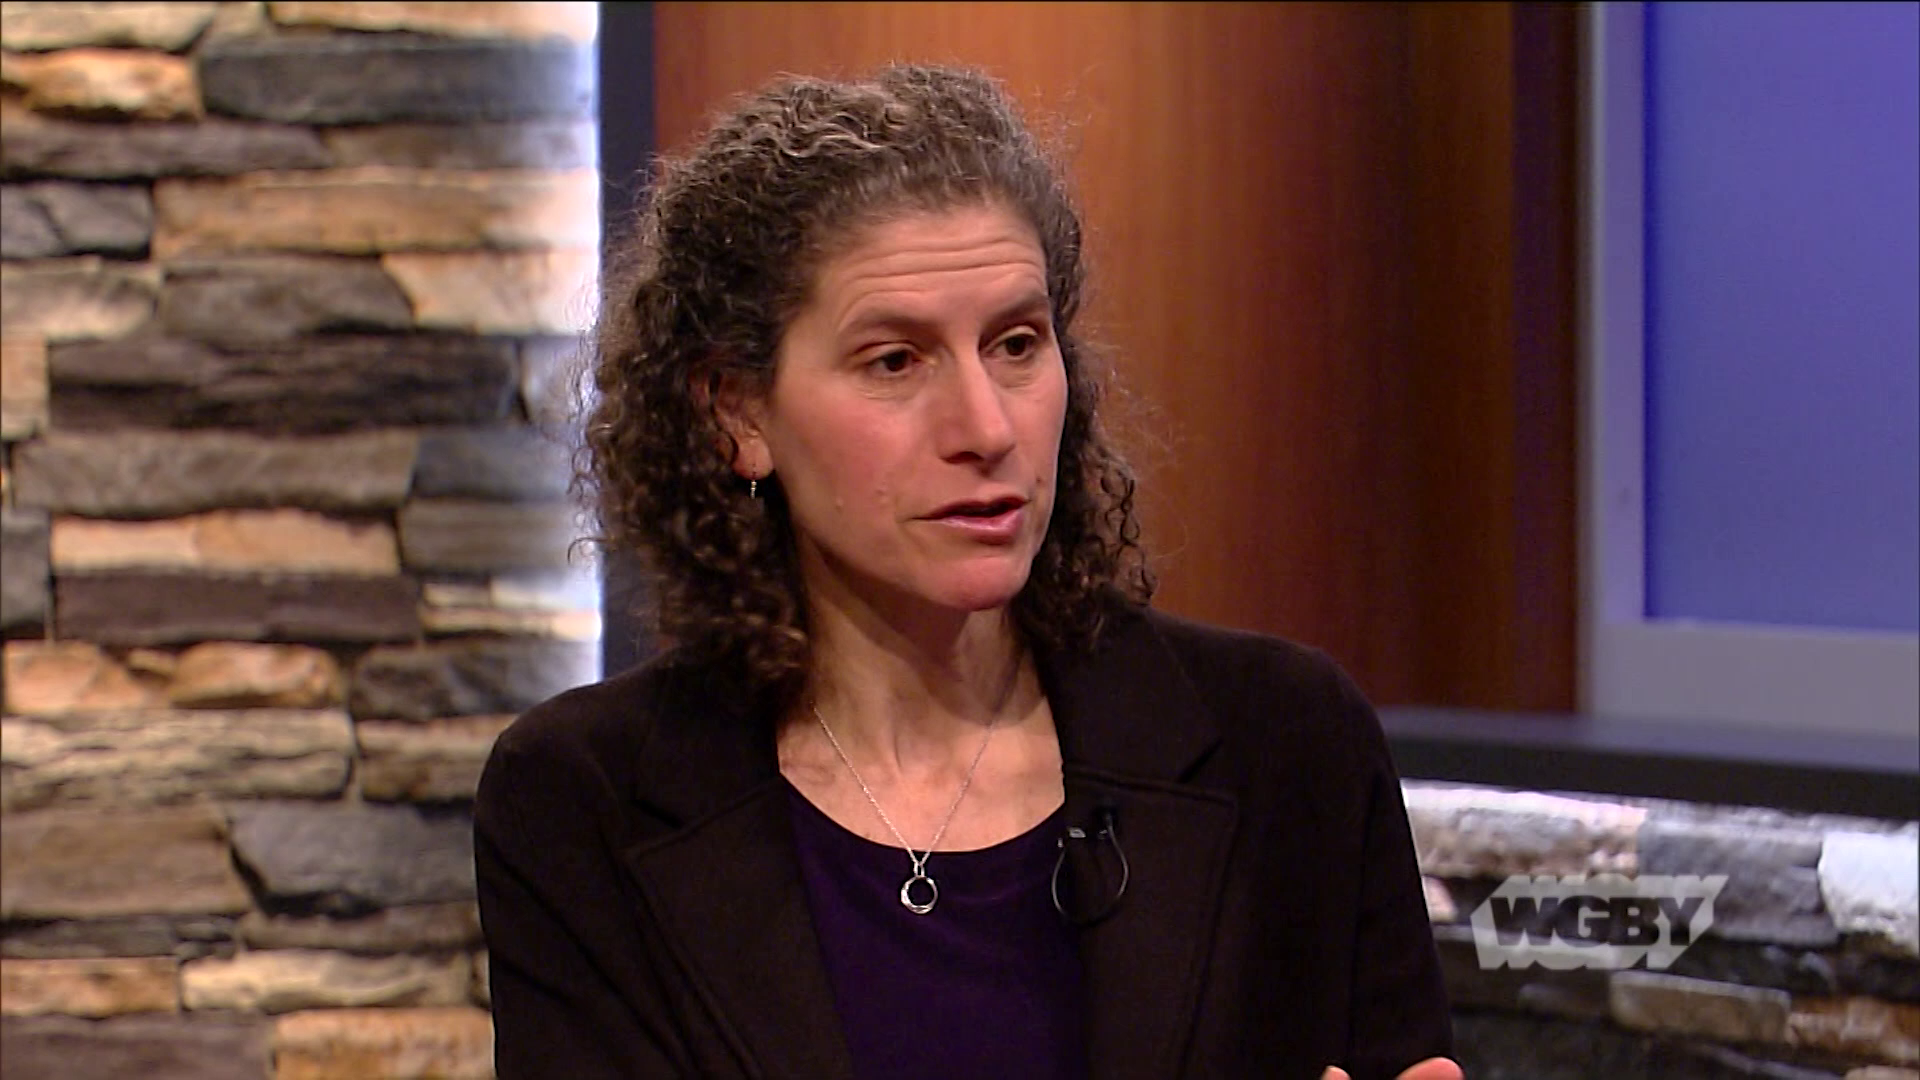 In conjuction with Western Mass. Network to End Homelessness, Pamela Schwartz discusses how she believes legislation can curb homelessness in Massachusetts.